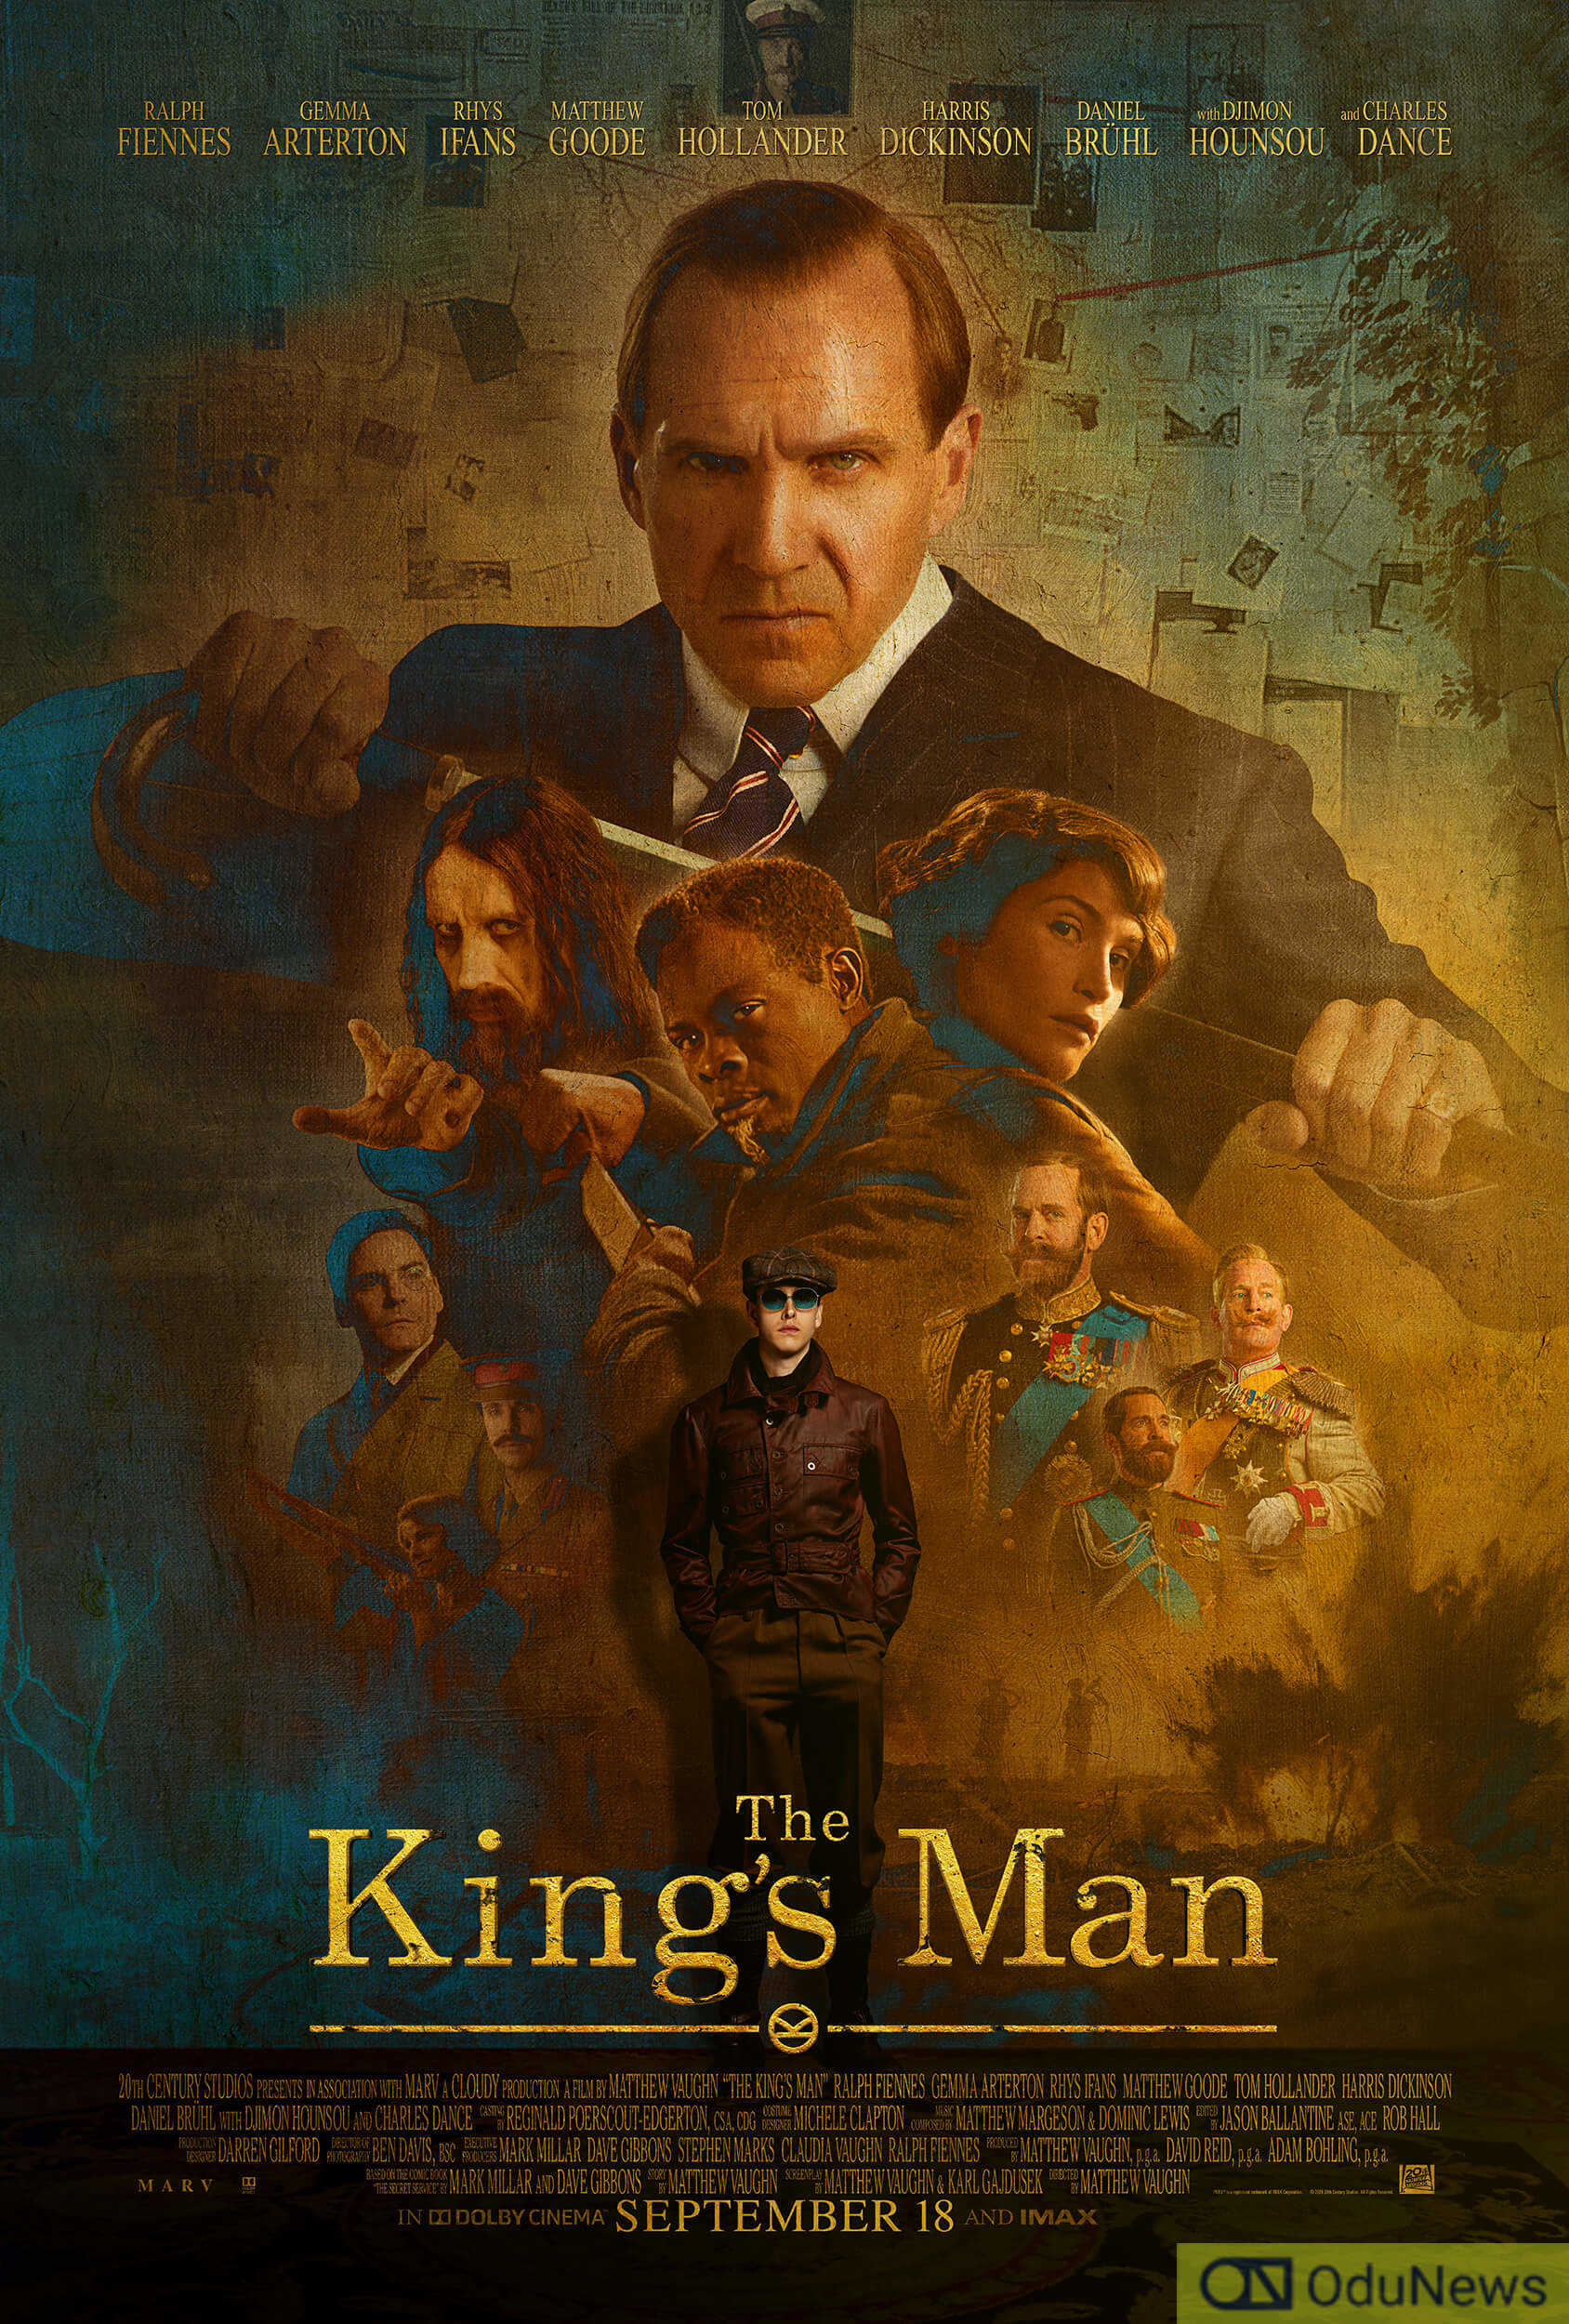 The Kingsman movie poster